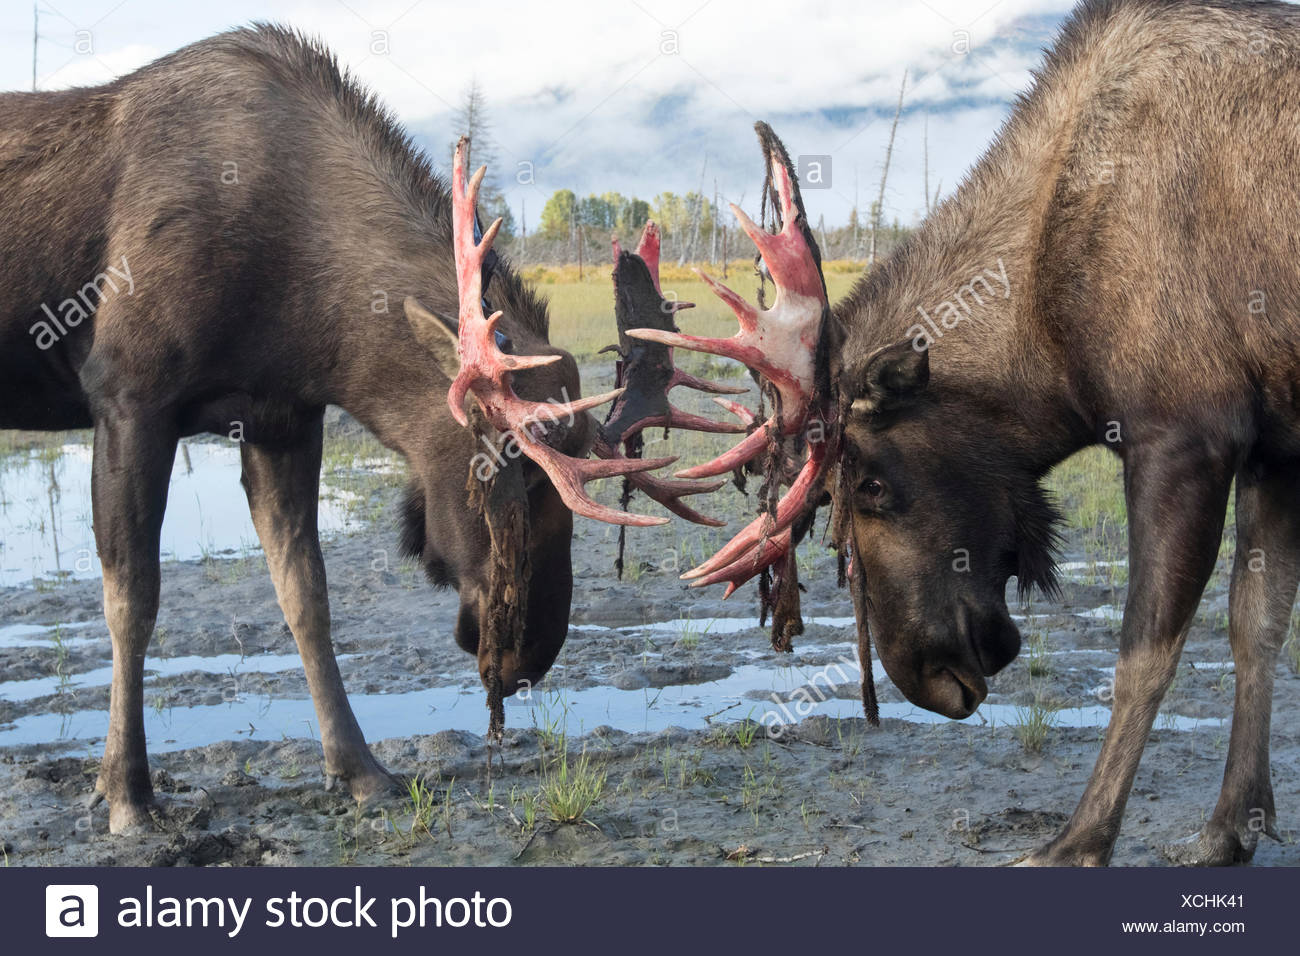 Bull moose (alces alces) just coming out of shedding its velvet and antlers look a little red,  Alaska Wildlife Conservation Centre - Stock Image